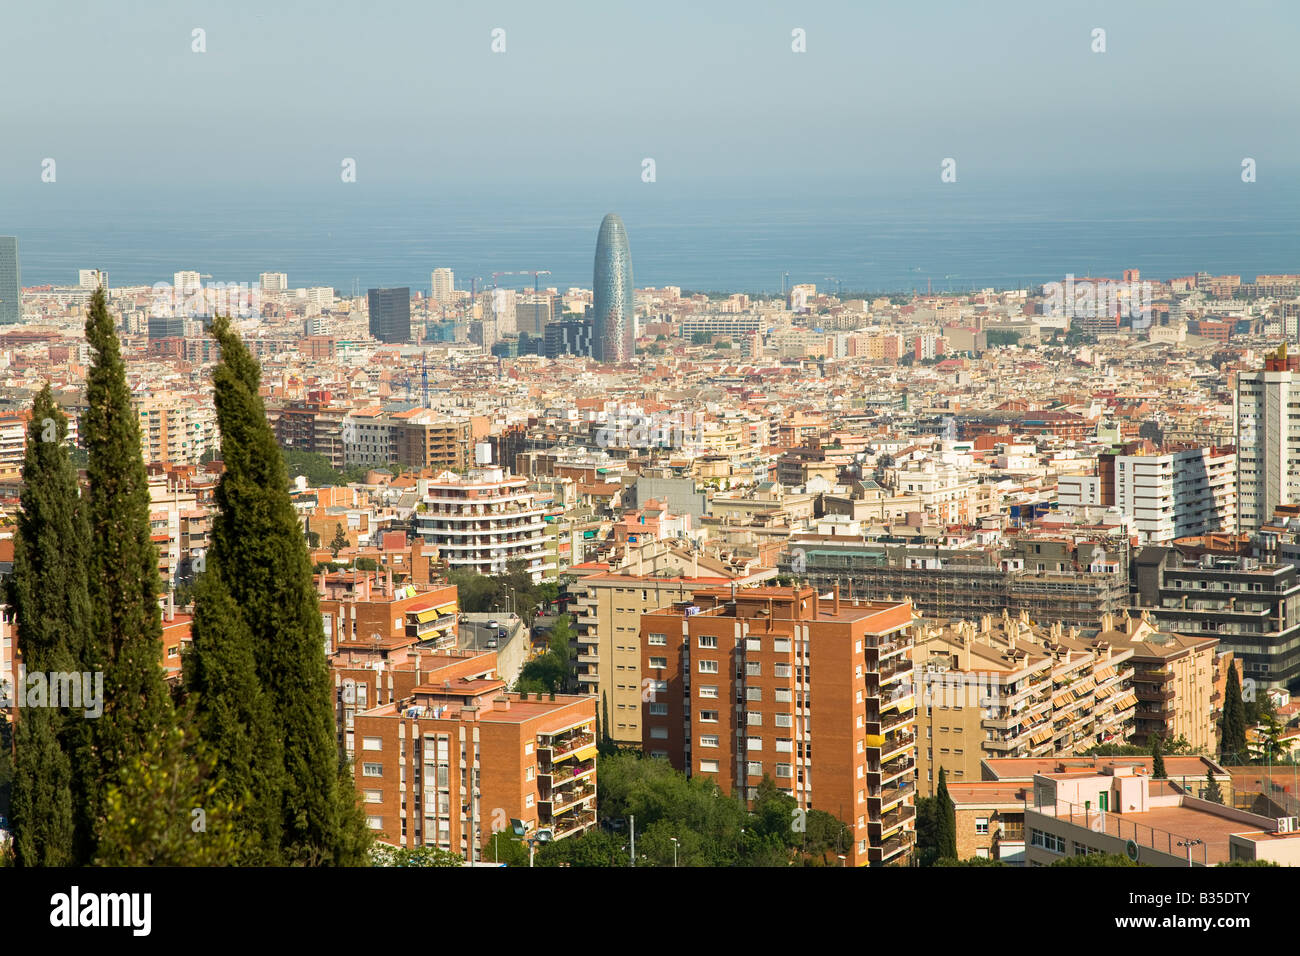 SPAIN Barcelona Overview of city from Parc Guell designed Antoni Gaudi Mediterranean Sea and urban sprawl - Stock Image